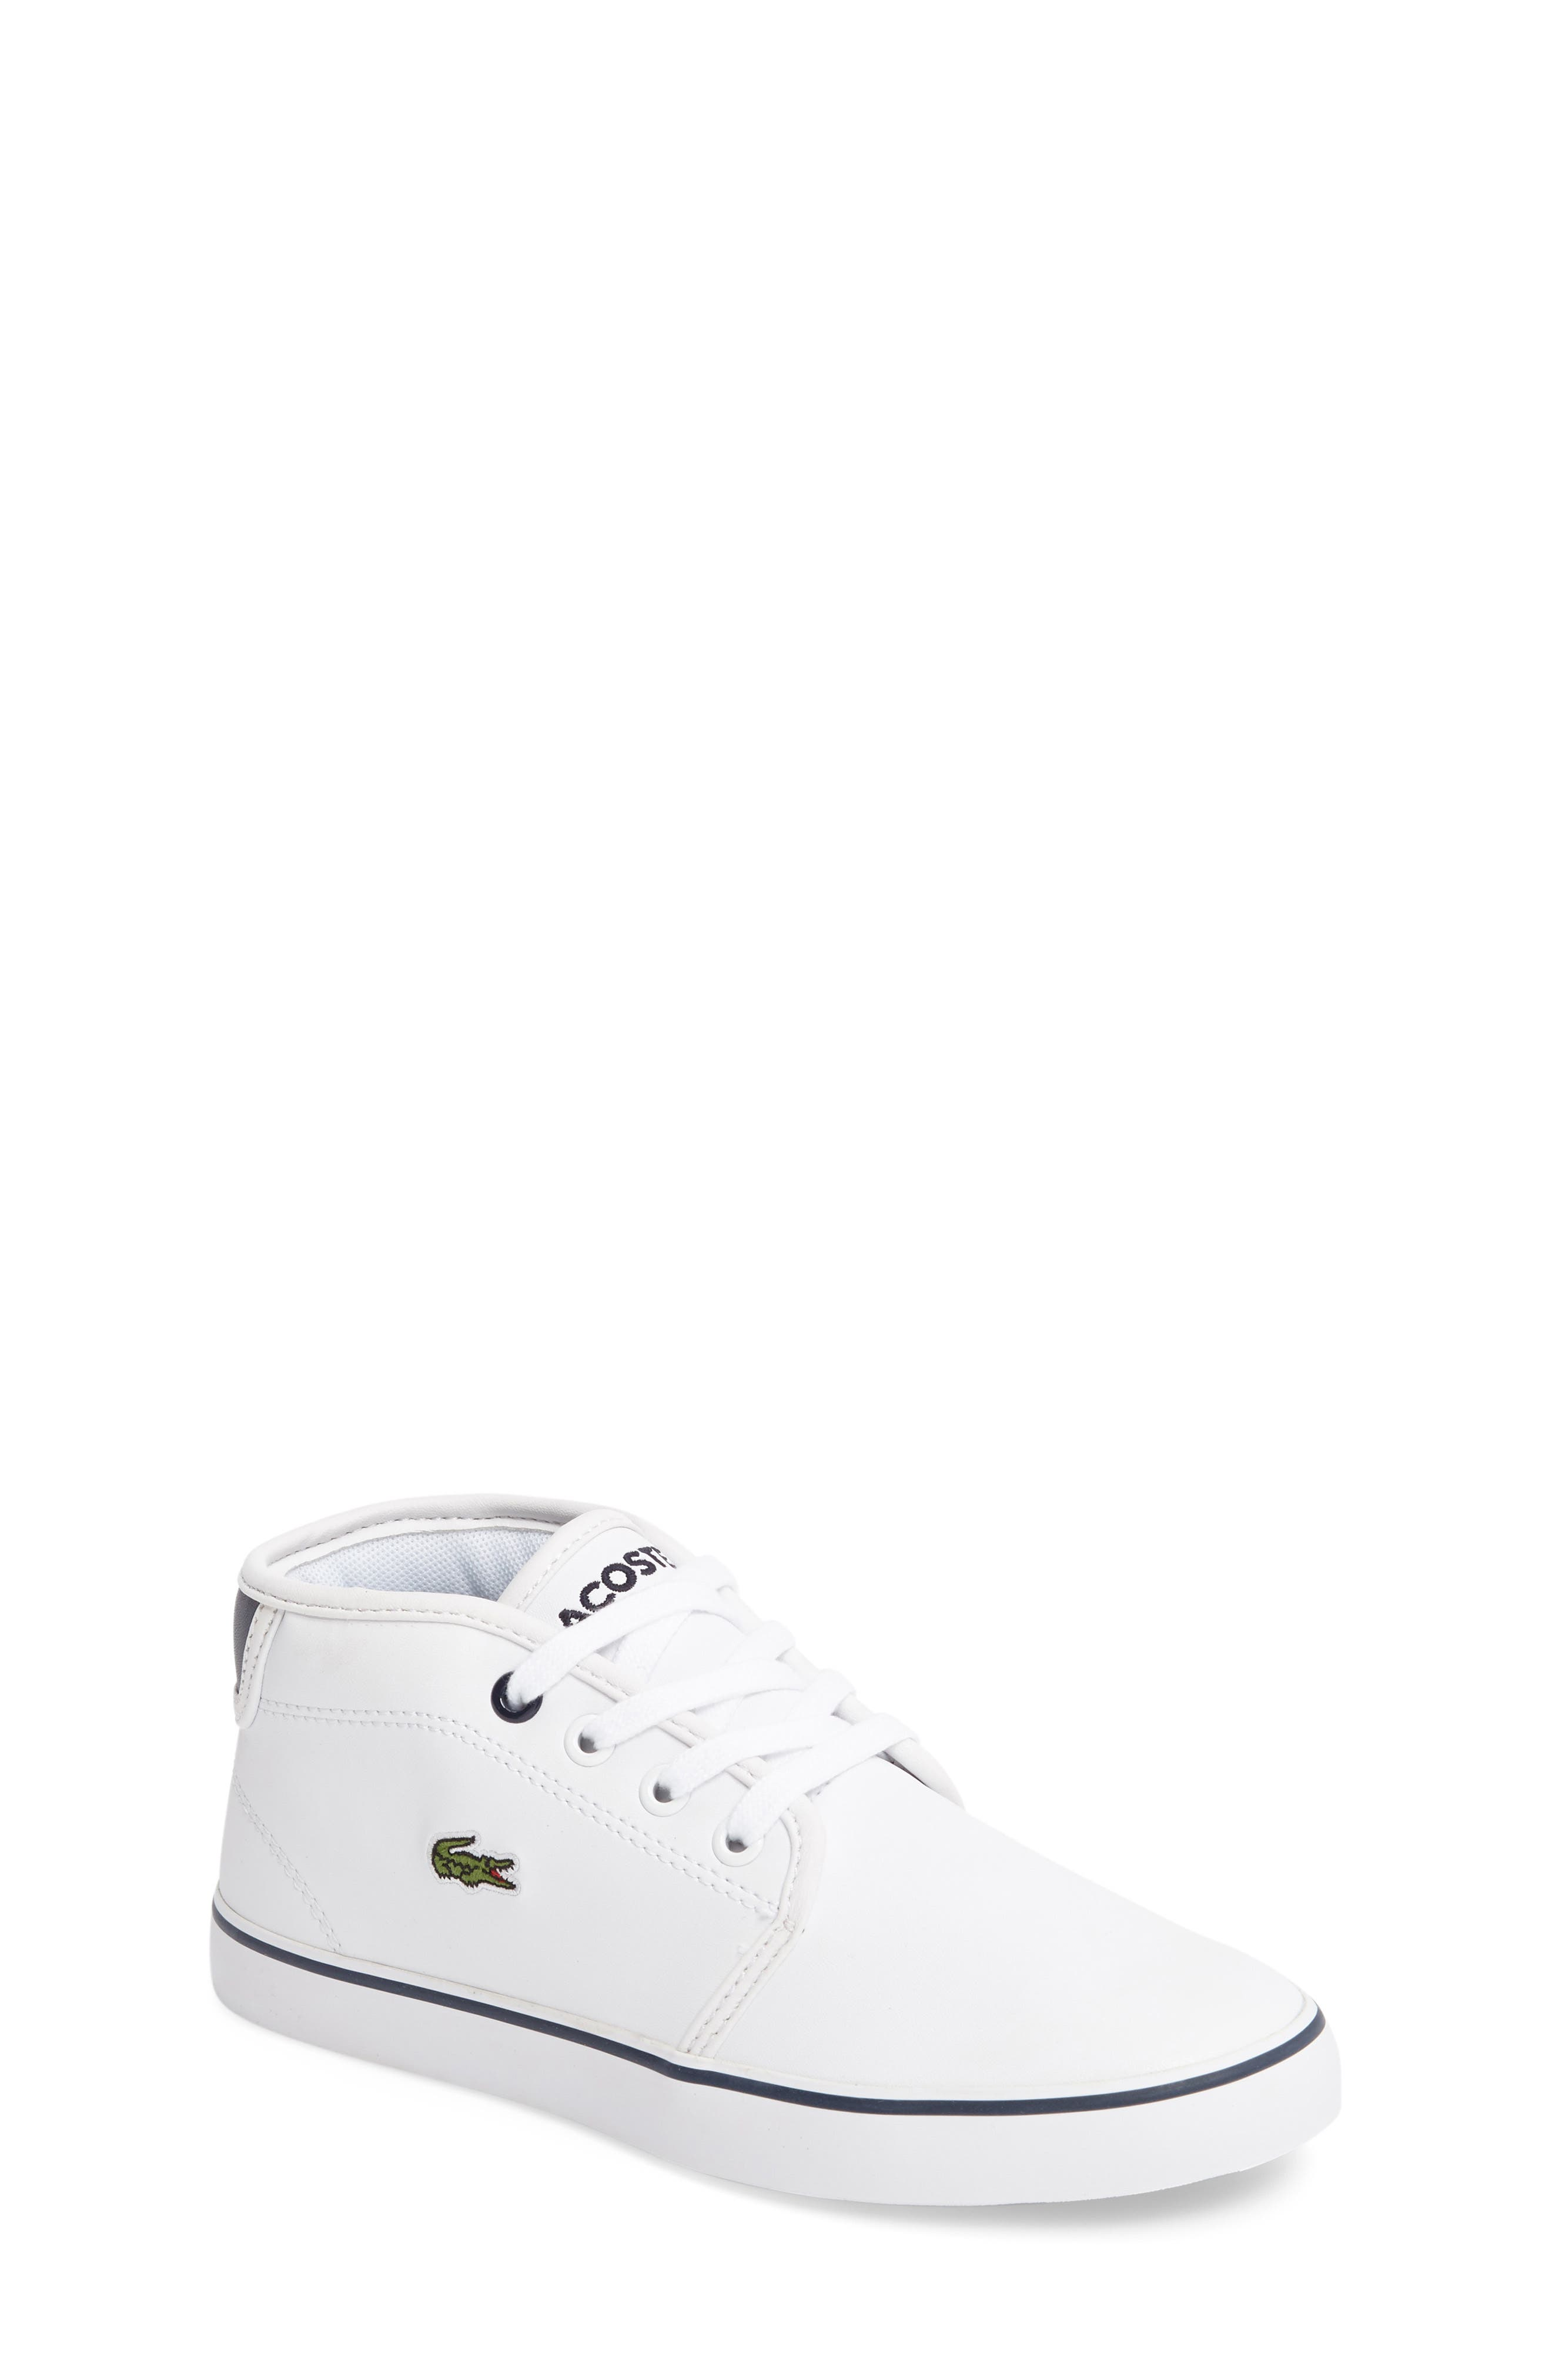 Ampthill High Top Sneaker,                         Main,                         color, White/ Navy Faux Leather